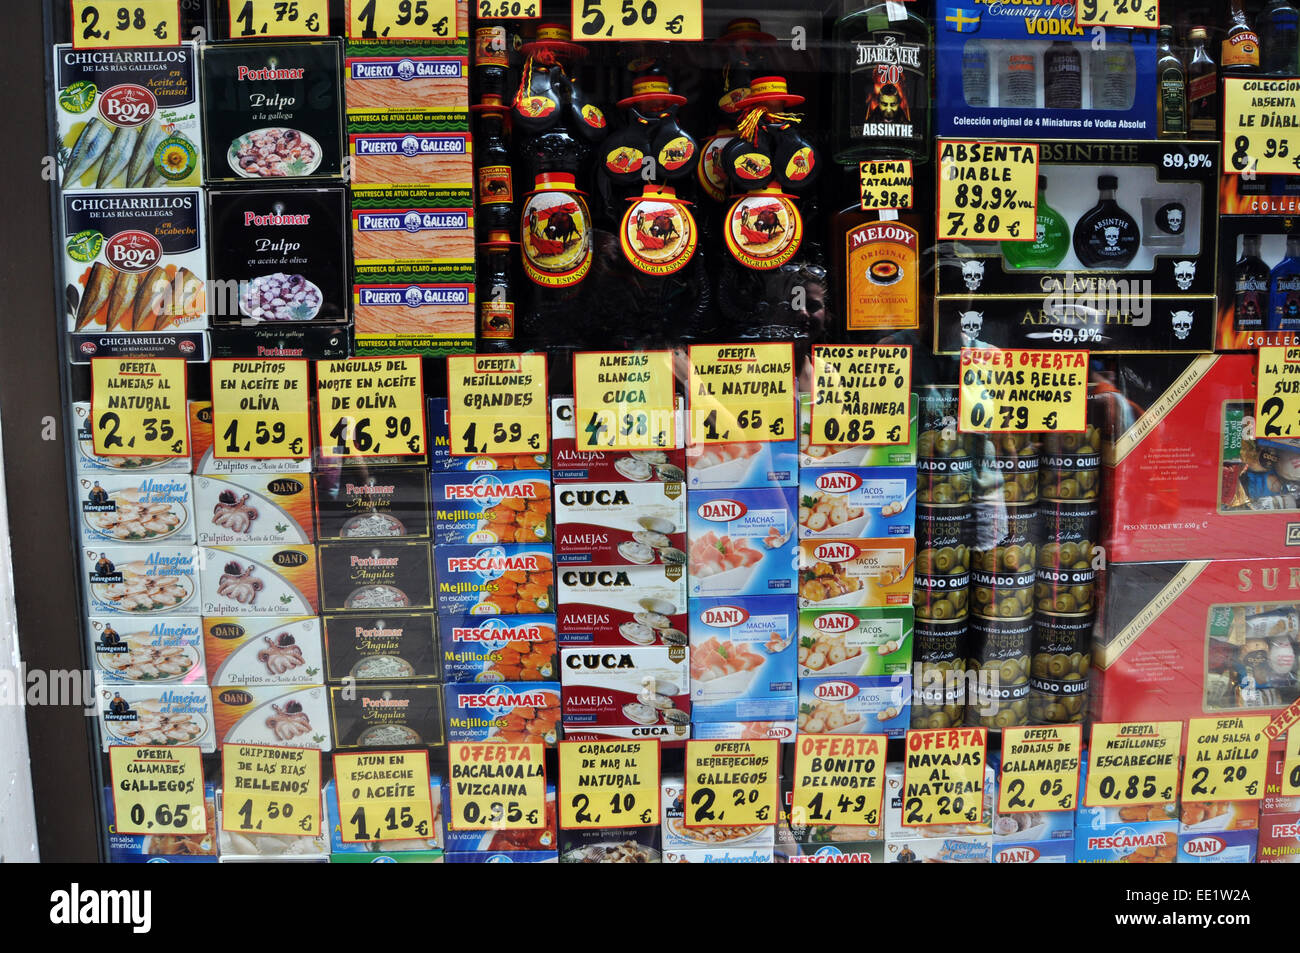 Tins of food and prices are displayed in a local shop window, Barcelona, Spain - Stock Image